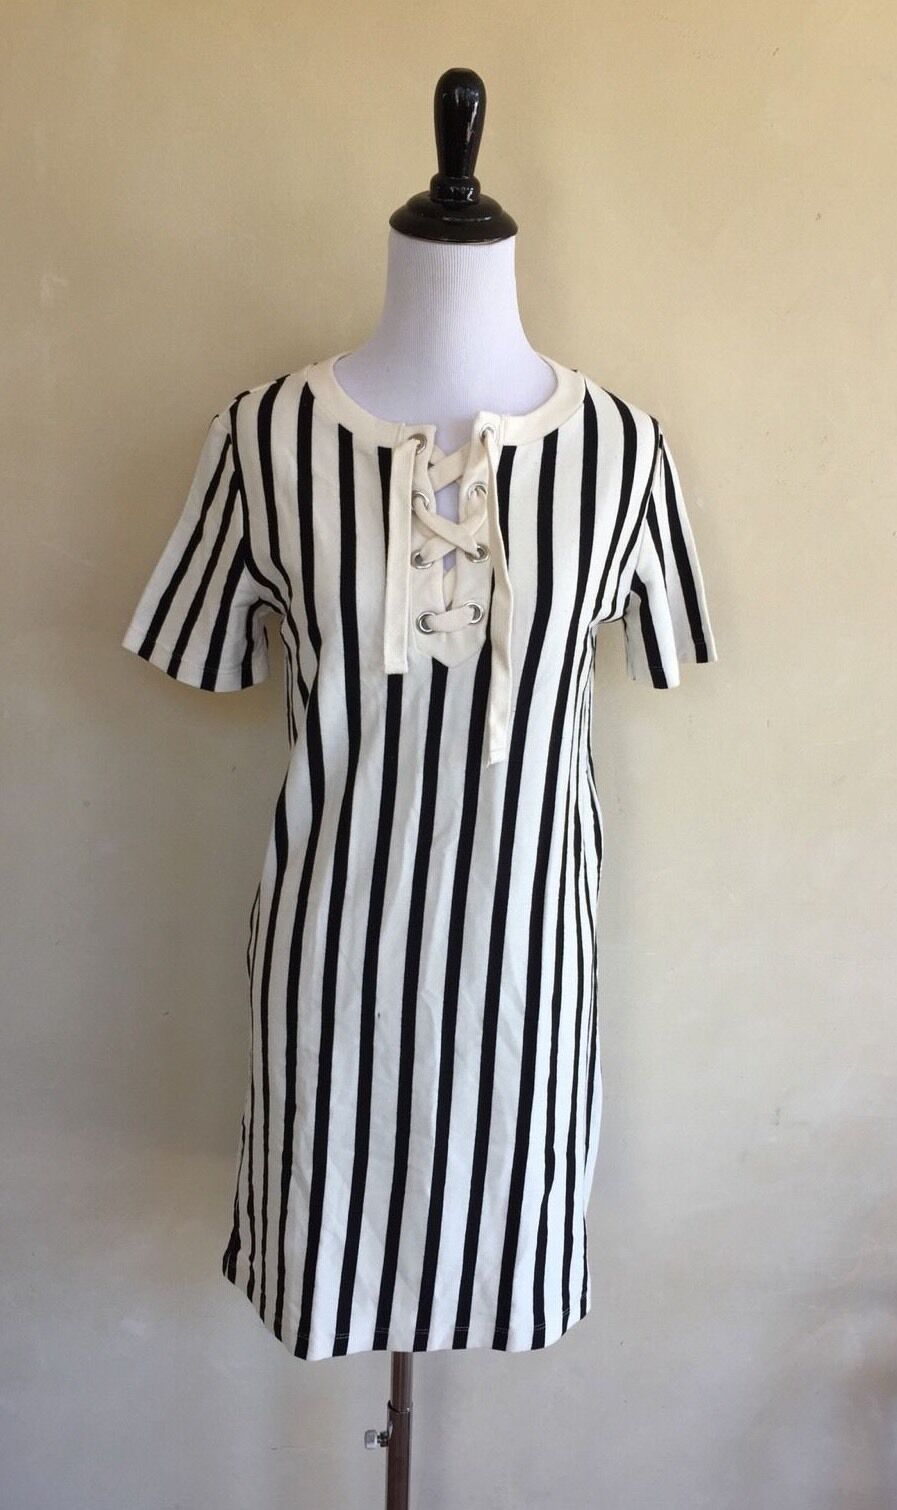 ZARA Trafaluc Dress Striped schwarz Weiß Tie Cotton Short Sleeve M NEW W  TAGS